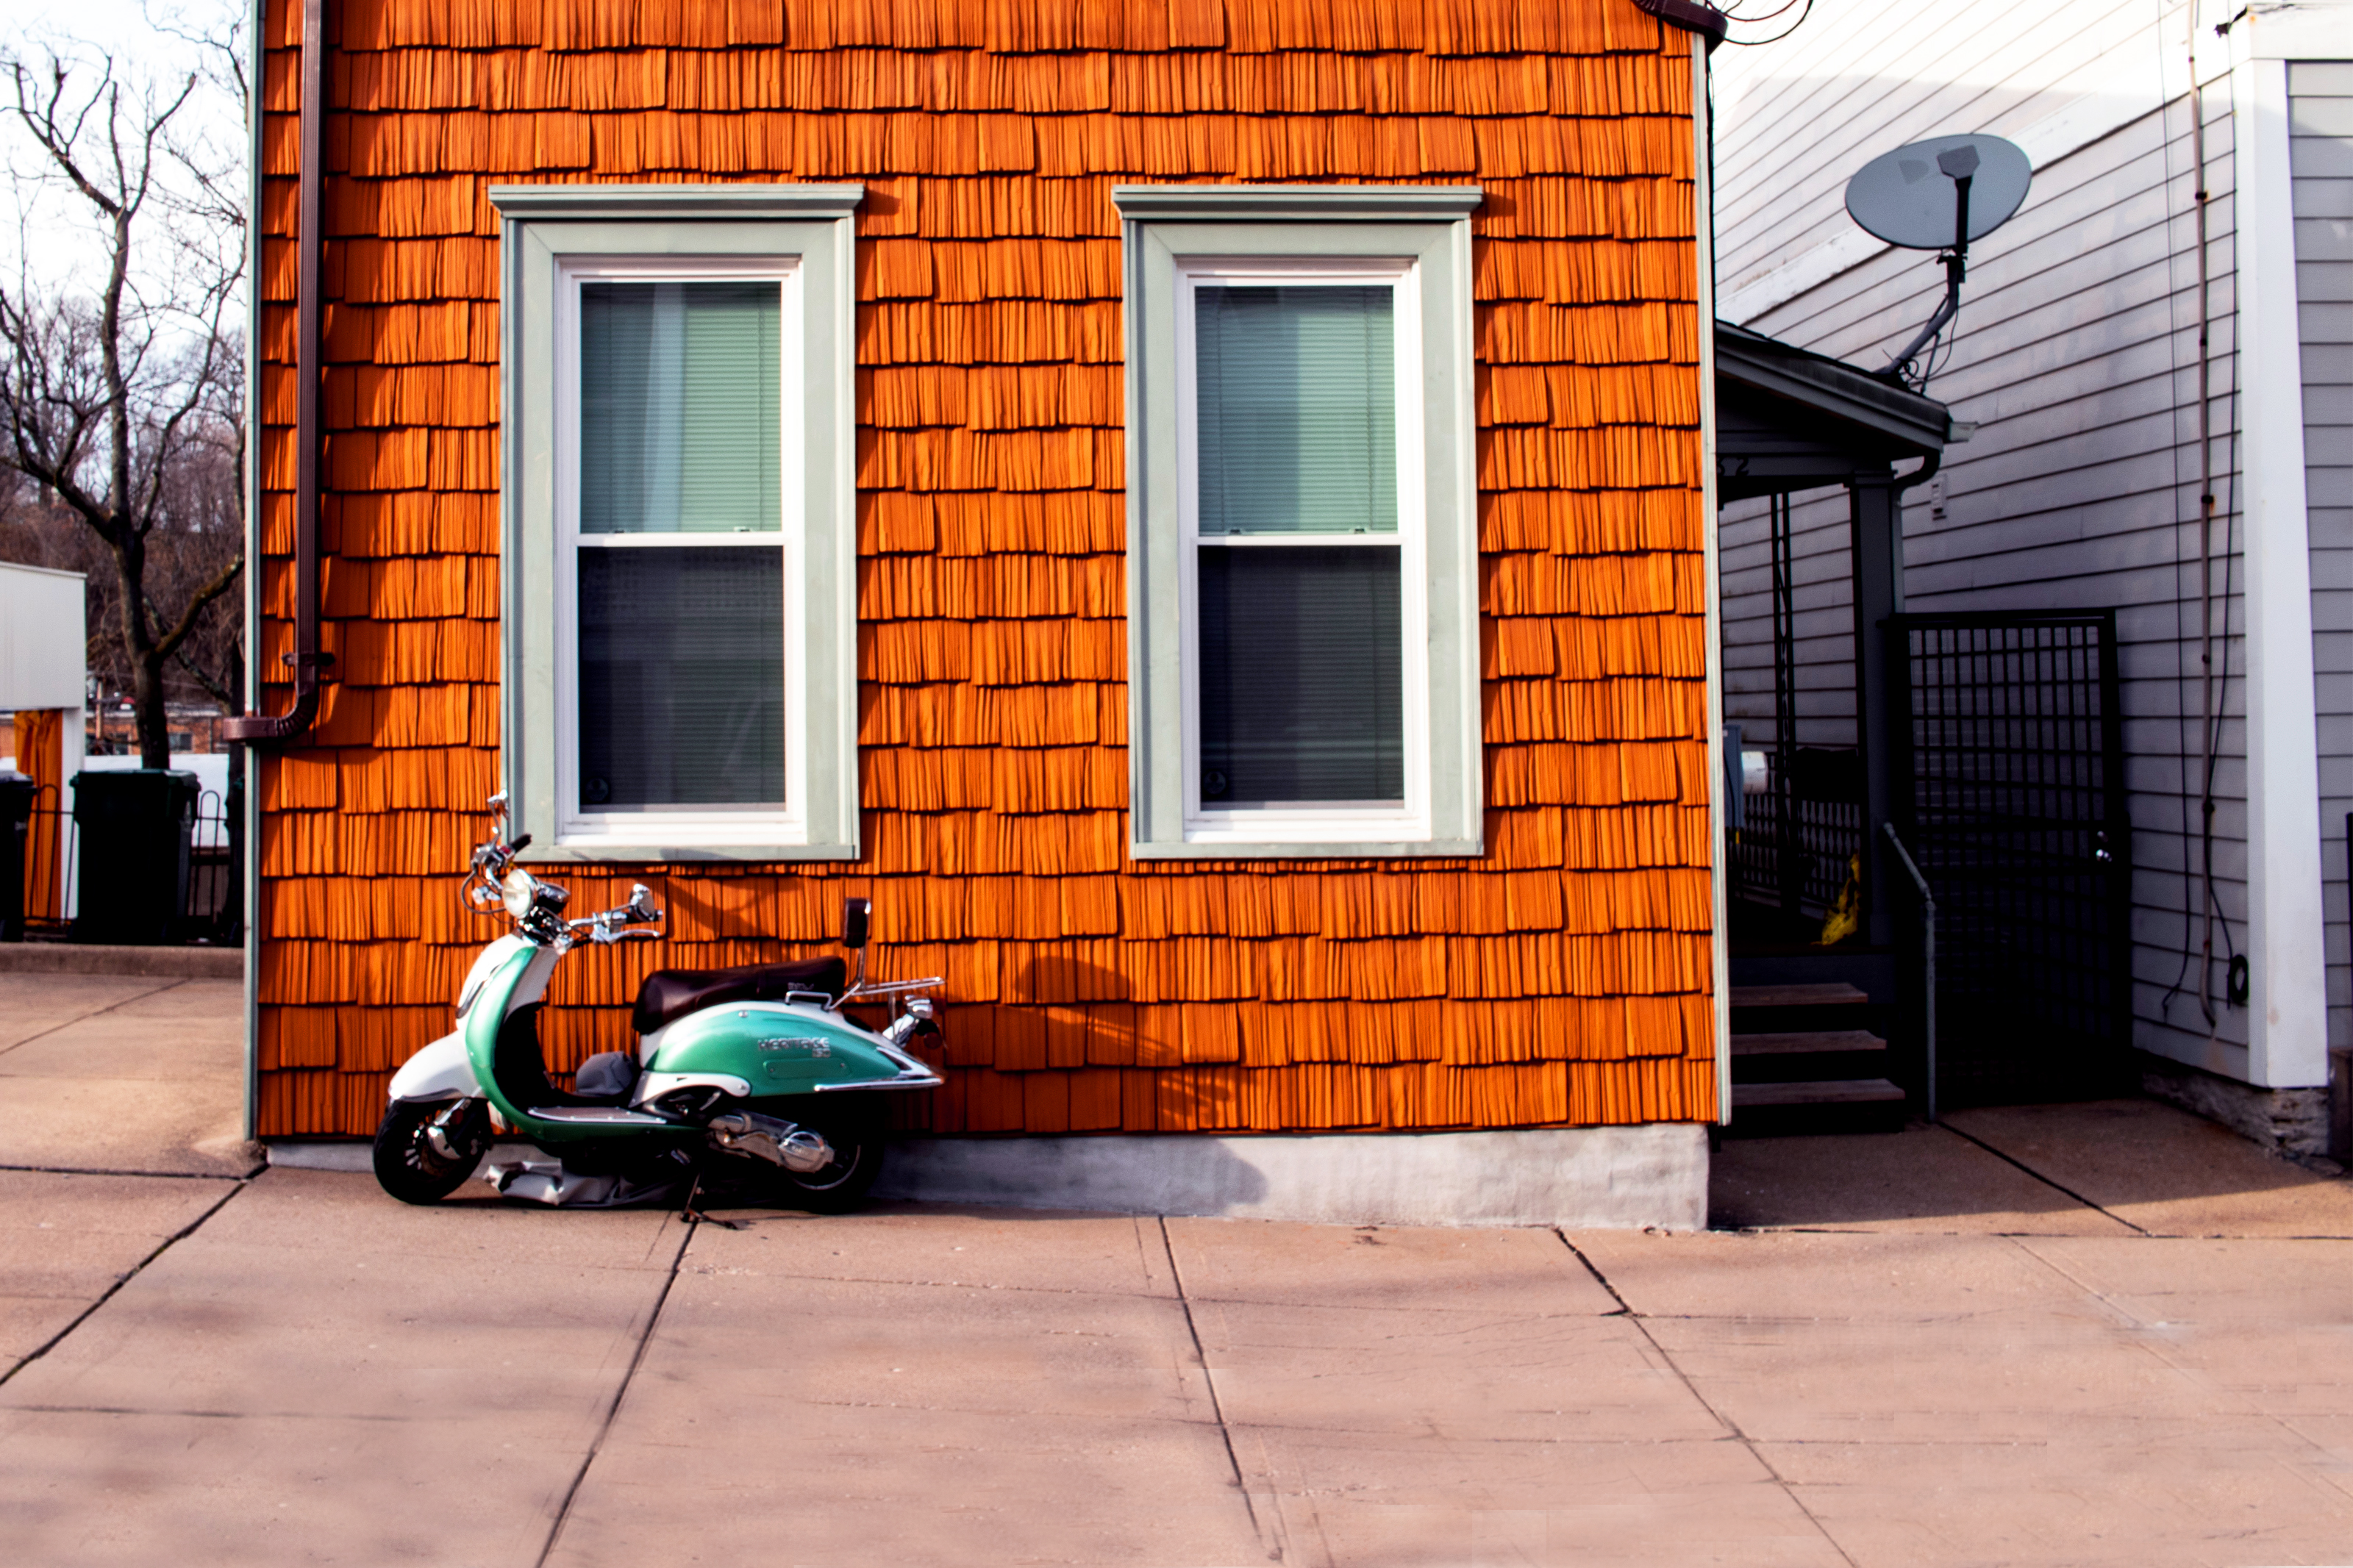 Wood-paneled house with green scooter resting against it